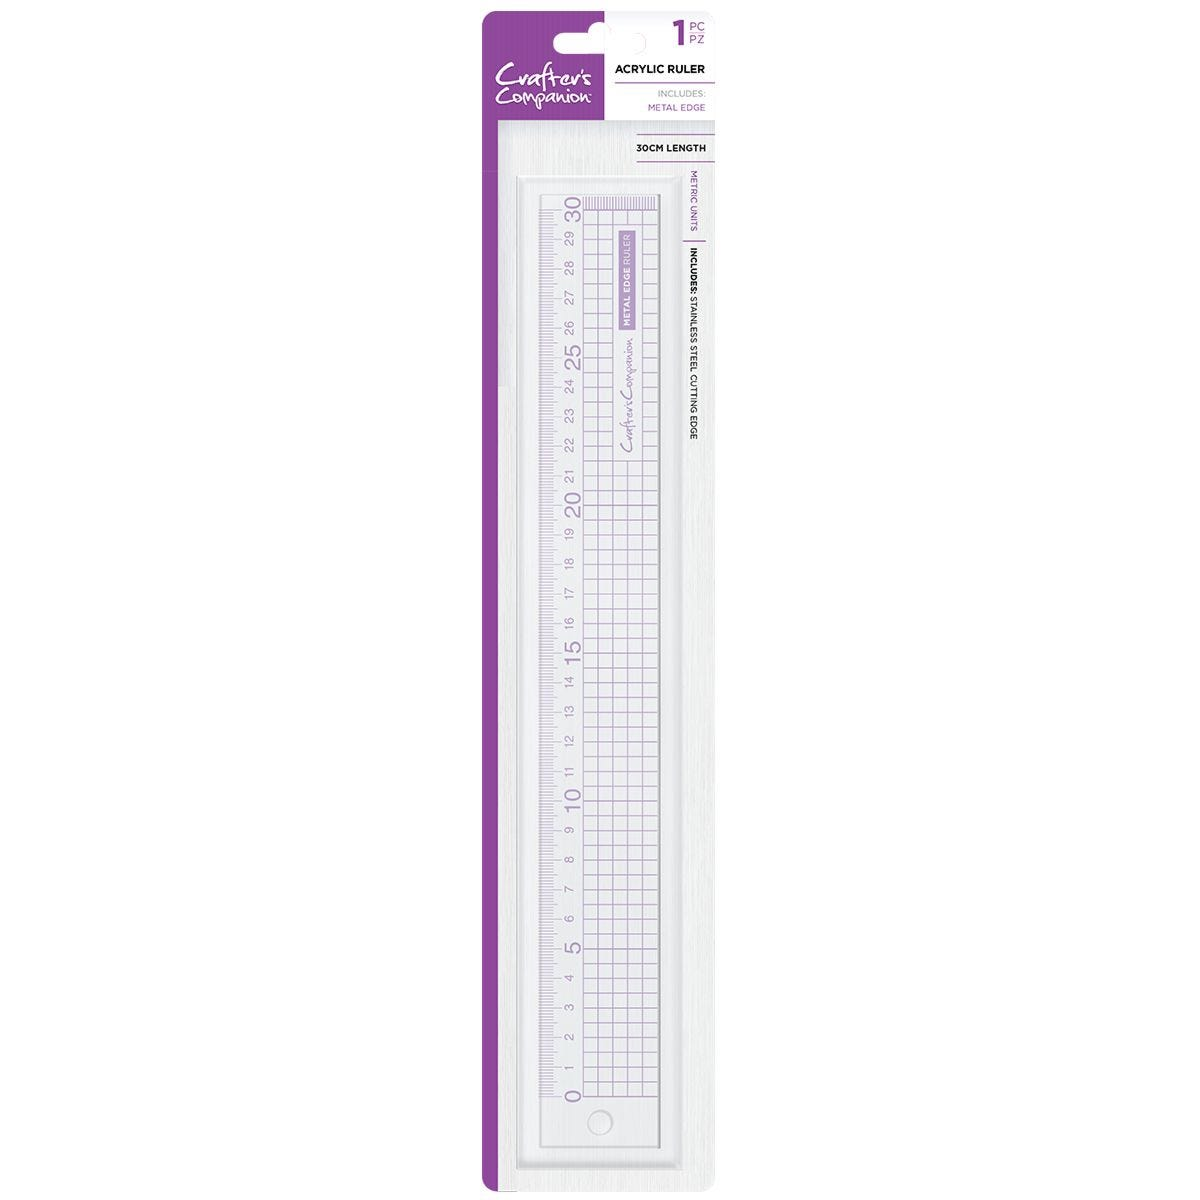 Crafter's Companion Metal Edge Acrylic Ruler - 30cm